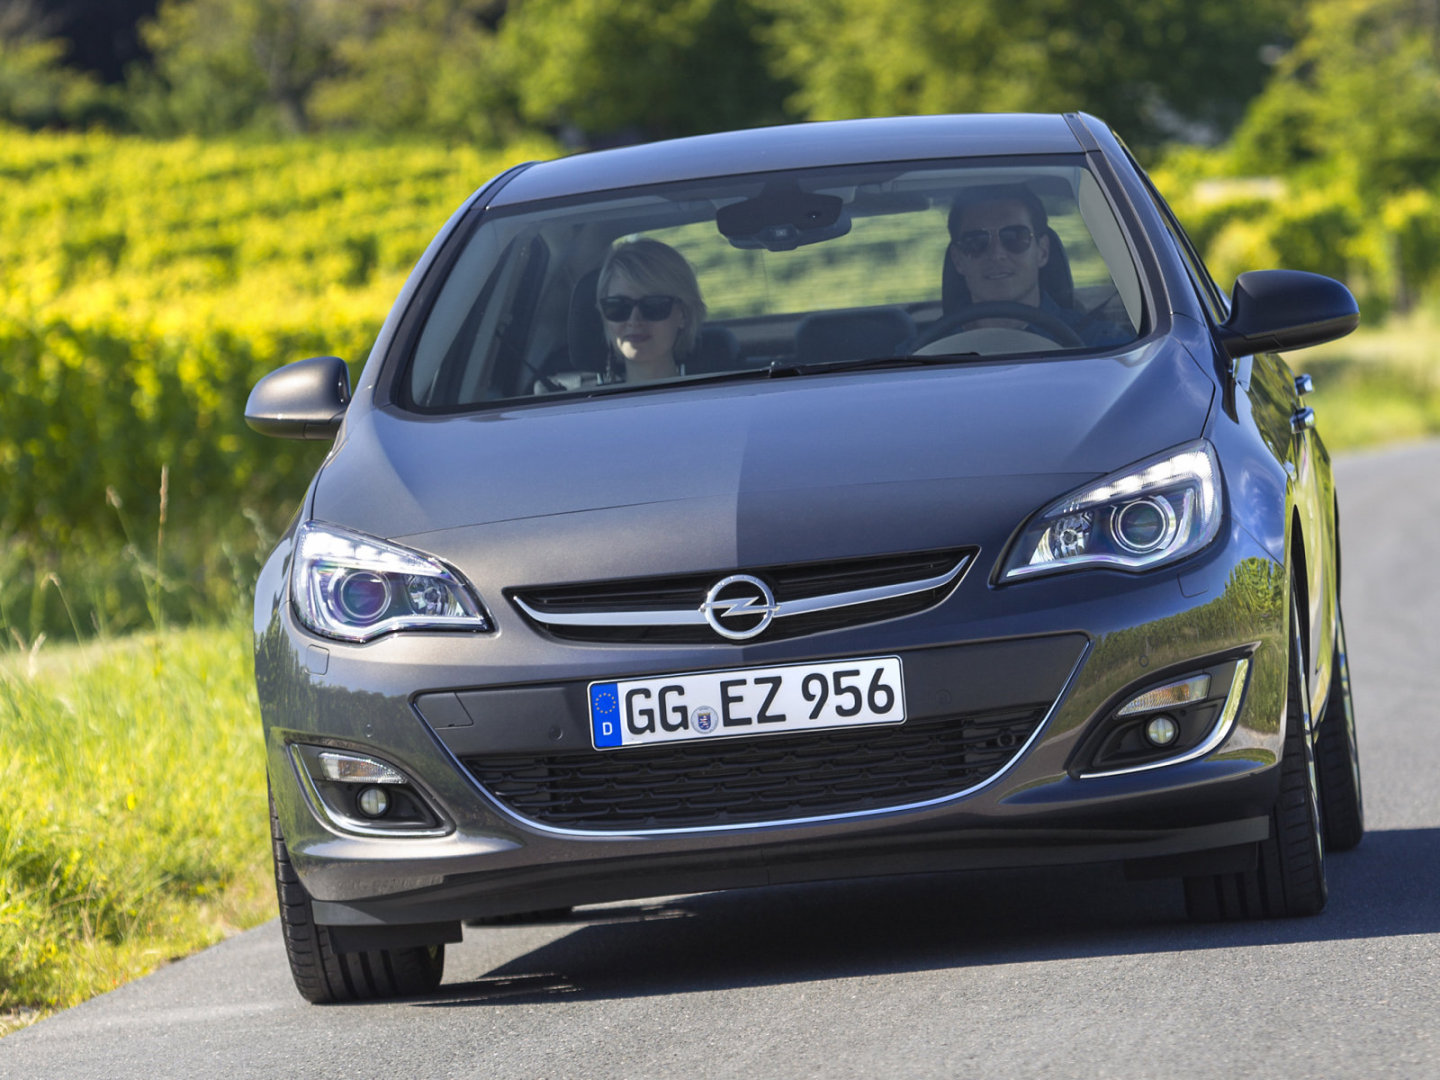 2013 Opel Astra j – pictures, information and specs - Auto ...